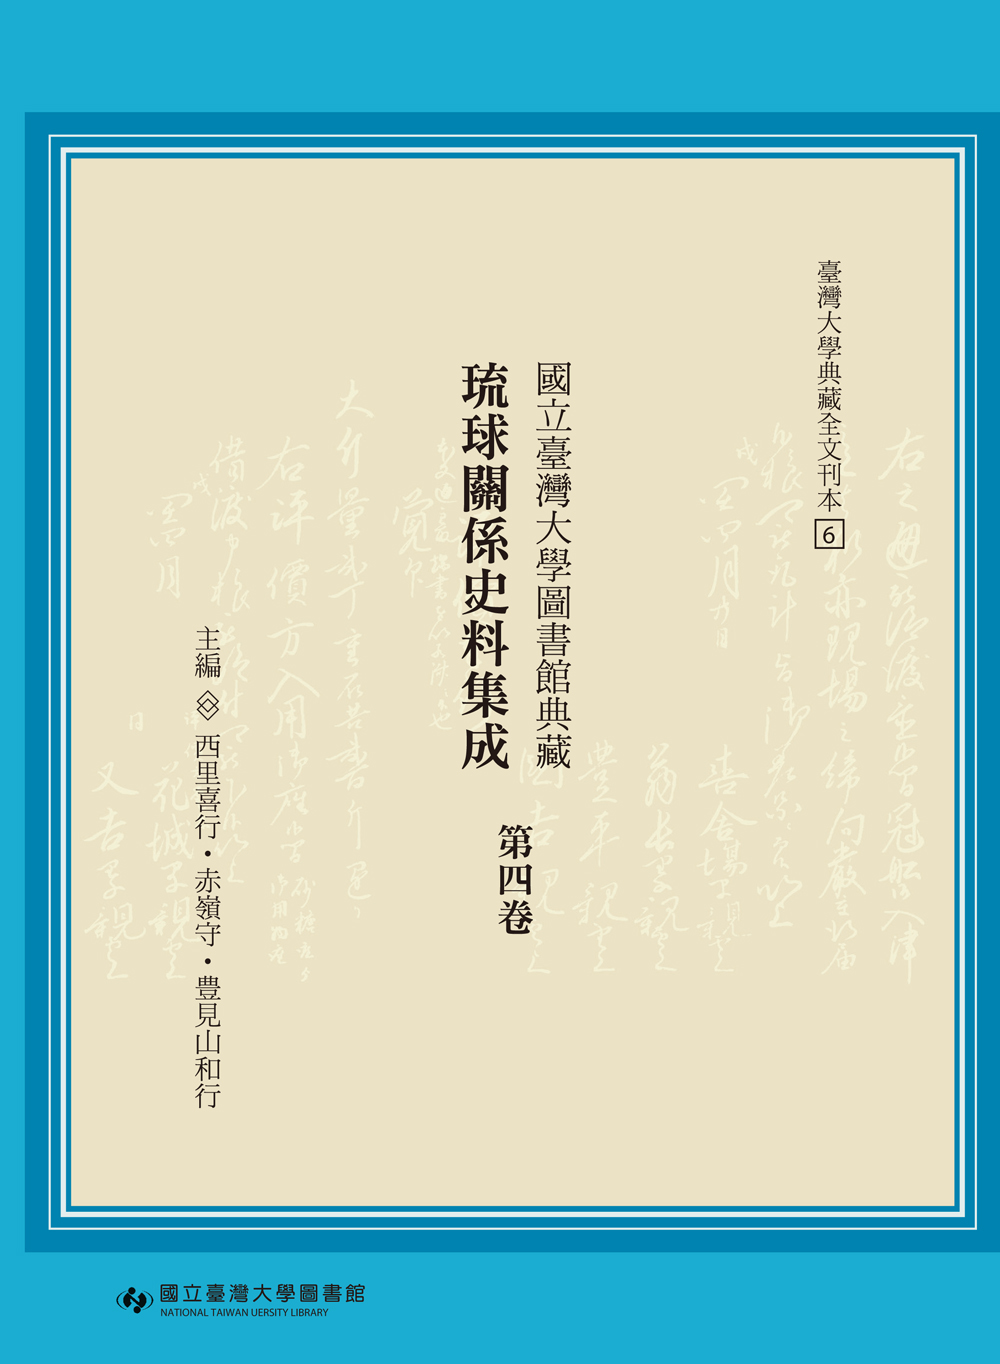 Historical Archives of the Ryukyu Kingdom Housed at National Taiwan University Library: A Transcription, Vol. 4